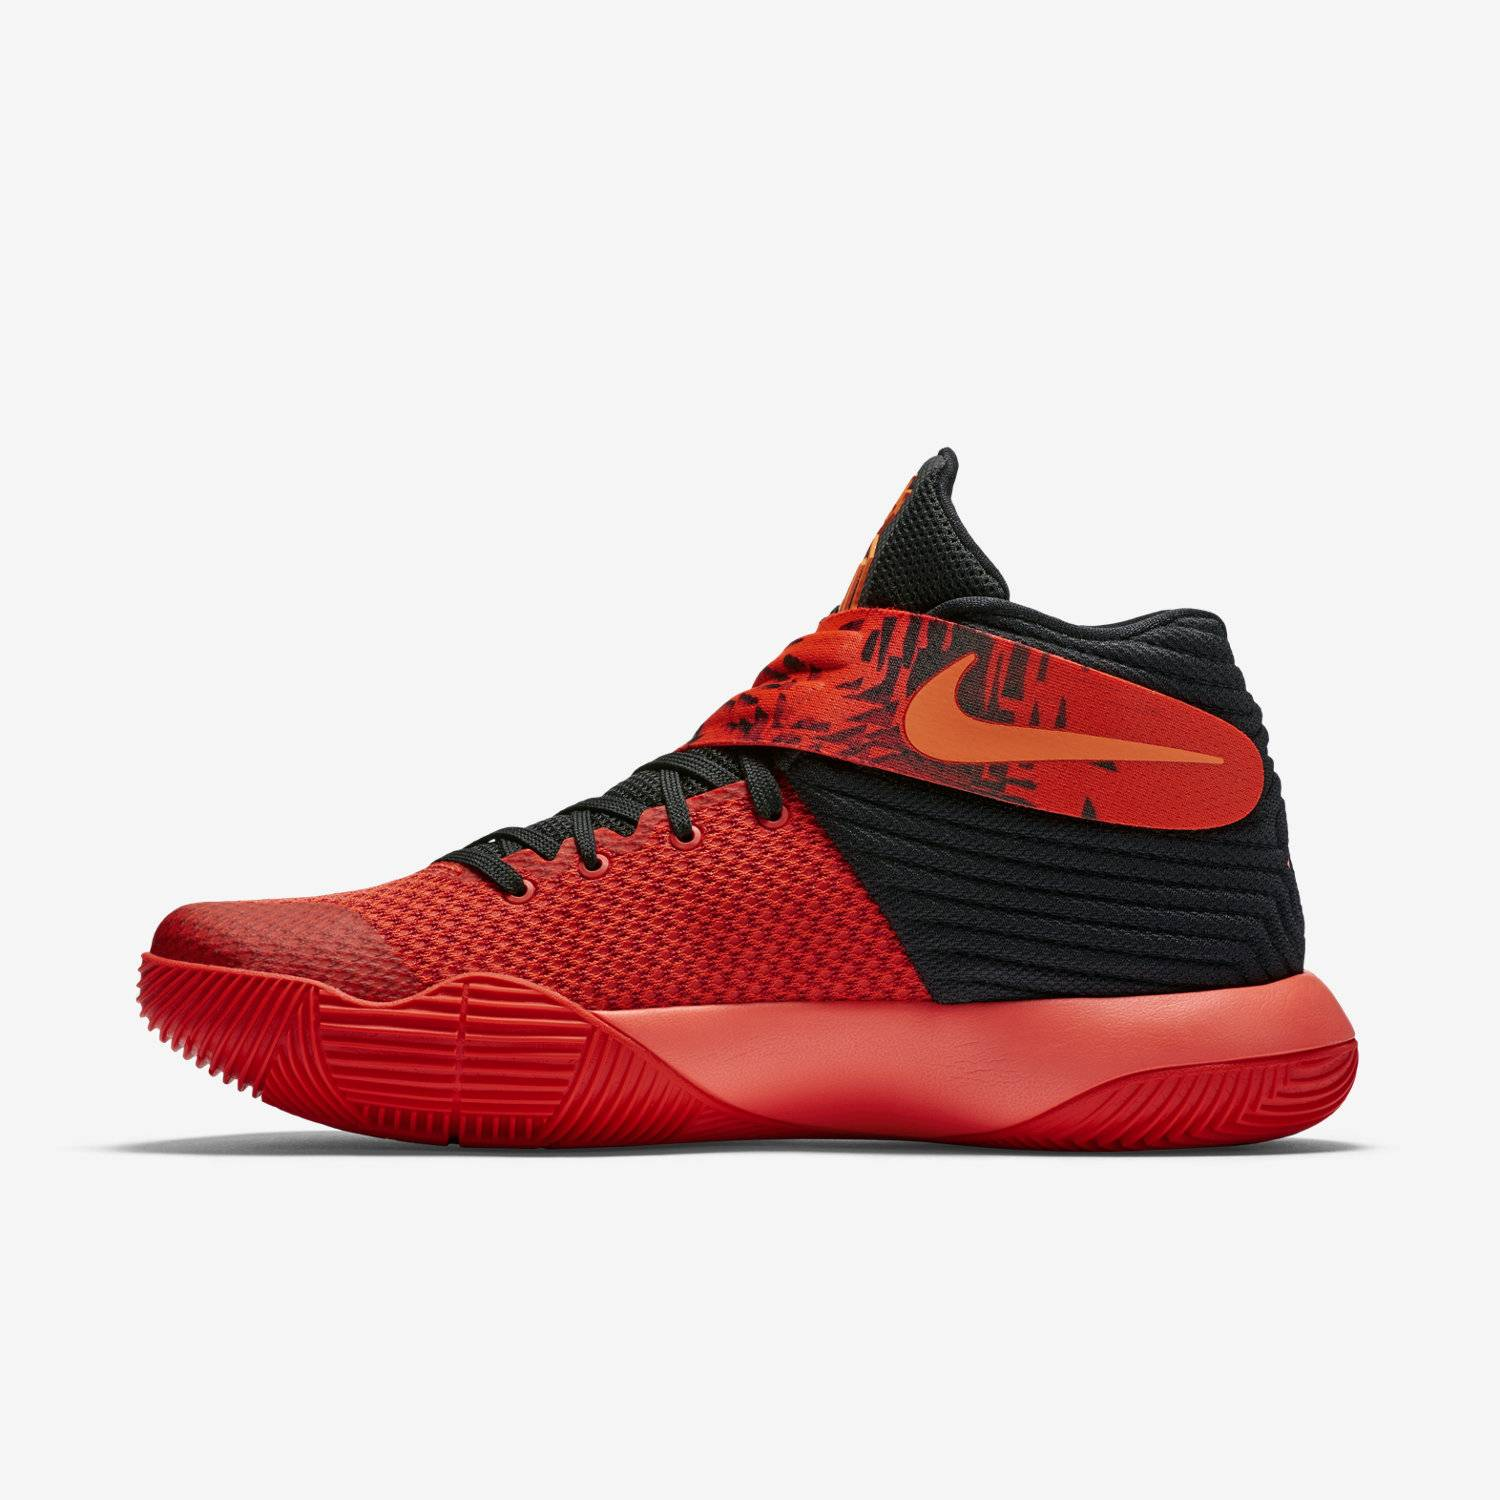 5a1235ffa71 ... coupon for kyrie 2 ky rispy kreme nike 914295 163 goat b6df8 8a760 ...